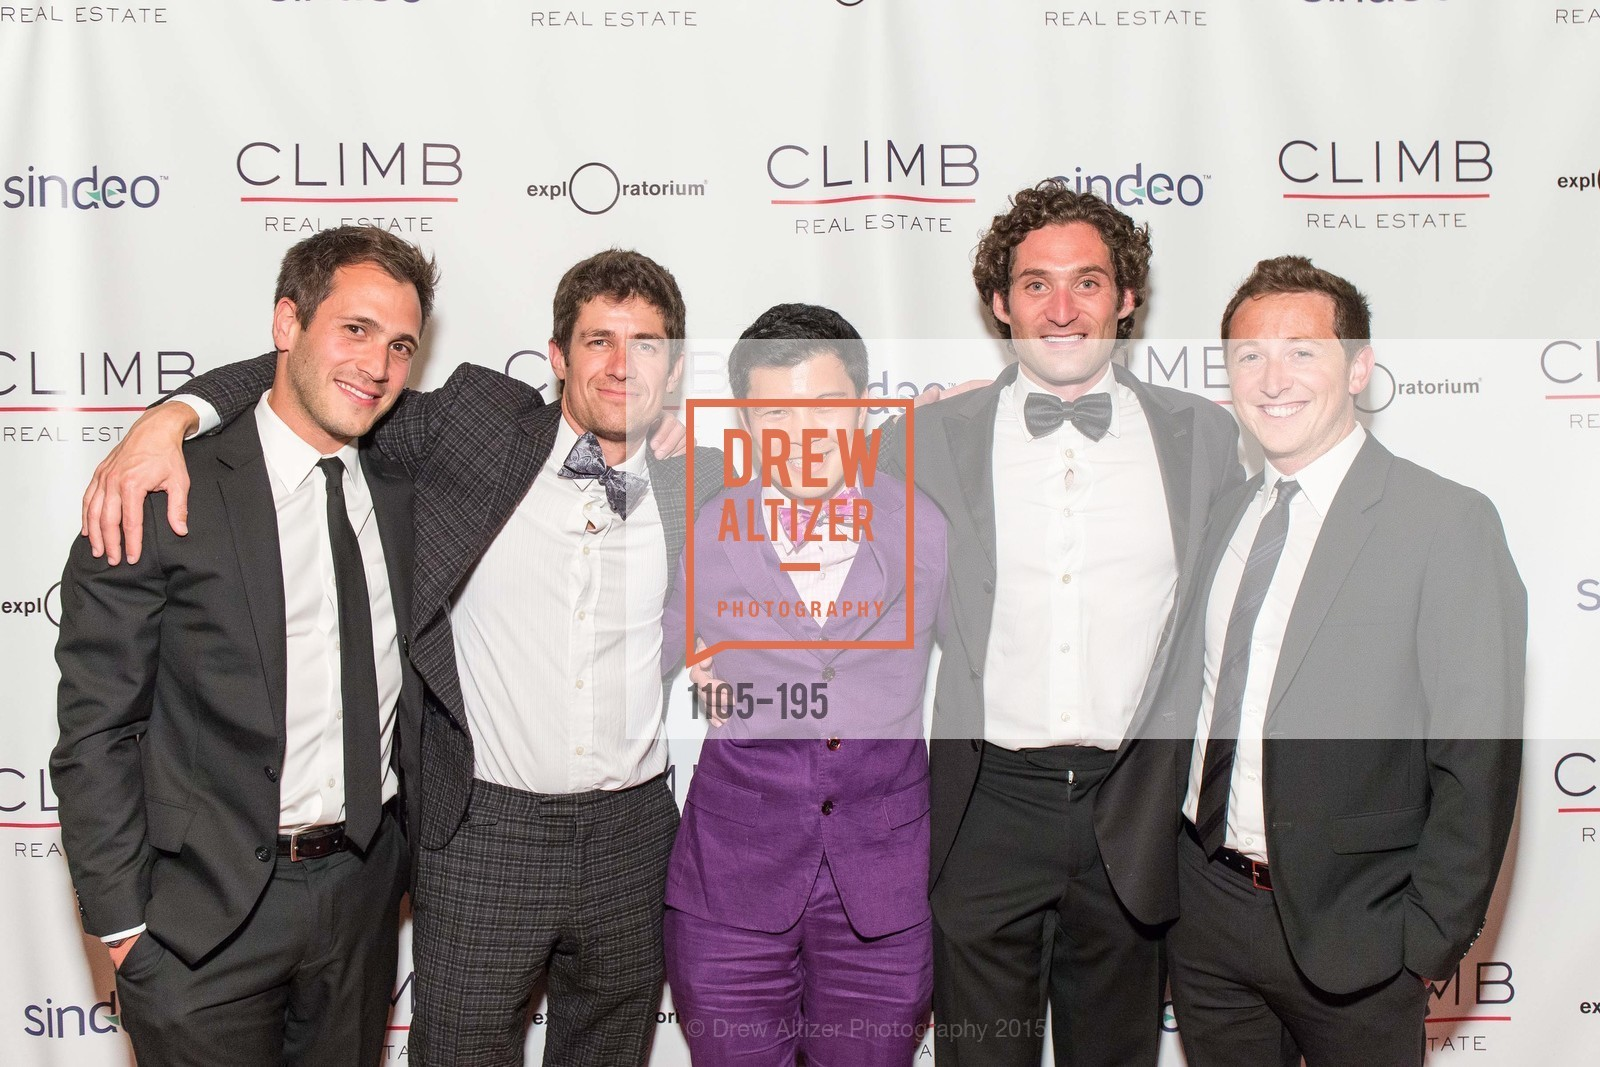 David Stark, Brian Shire, Tony Pham, Justin Fichelson, Stephen Haskell, Climb Real Estate and Sindeo Celebrate the Launch of Million Dollar Listing San Francisco, Local Edition San Francisco. 691 Market St, July 8th, 2015,Drew Altizer, Drew Altizer Photography, full-service agency, private events, San Francisco photographer, photographer california